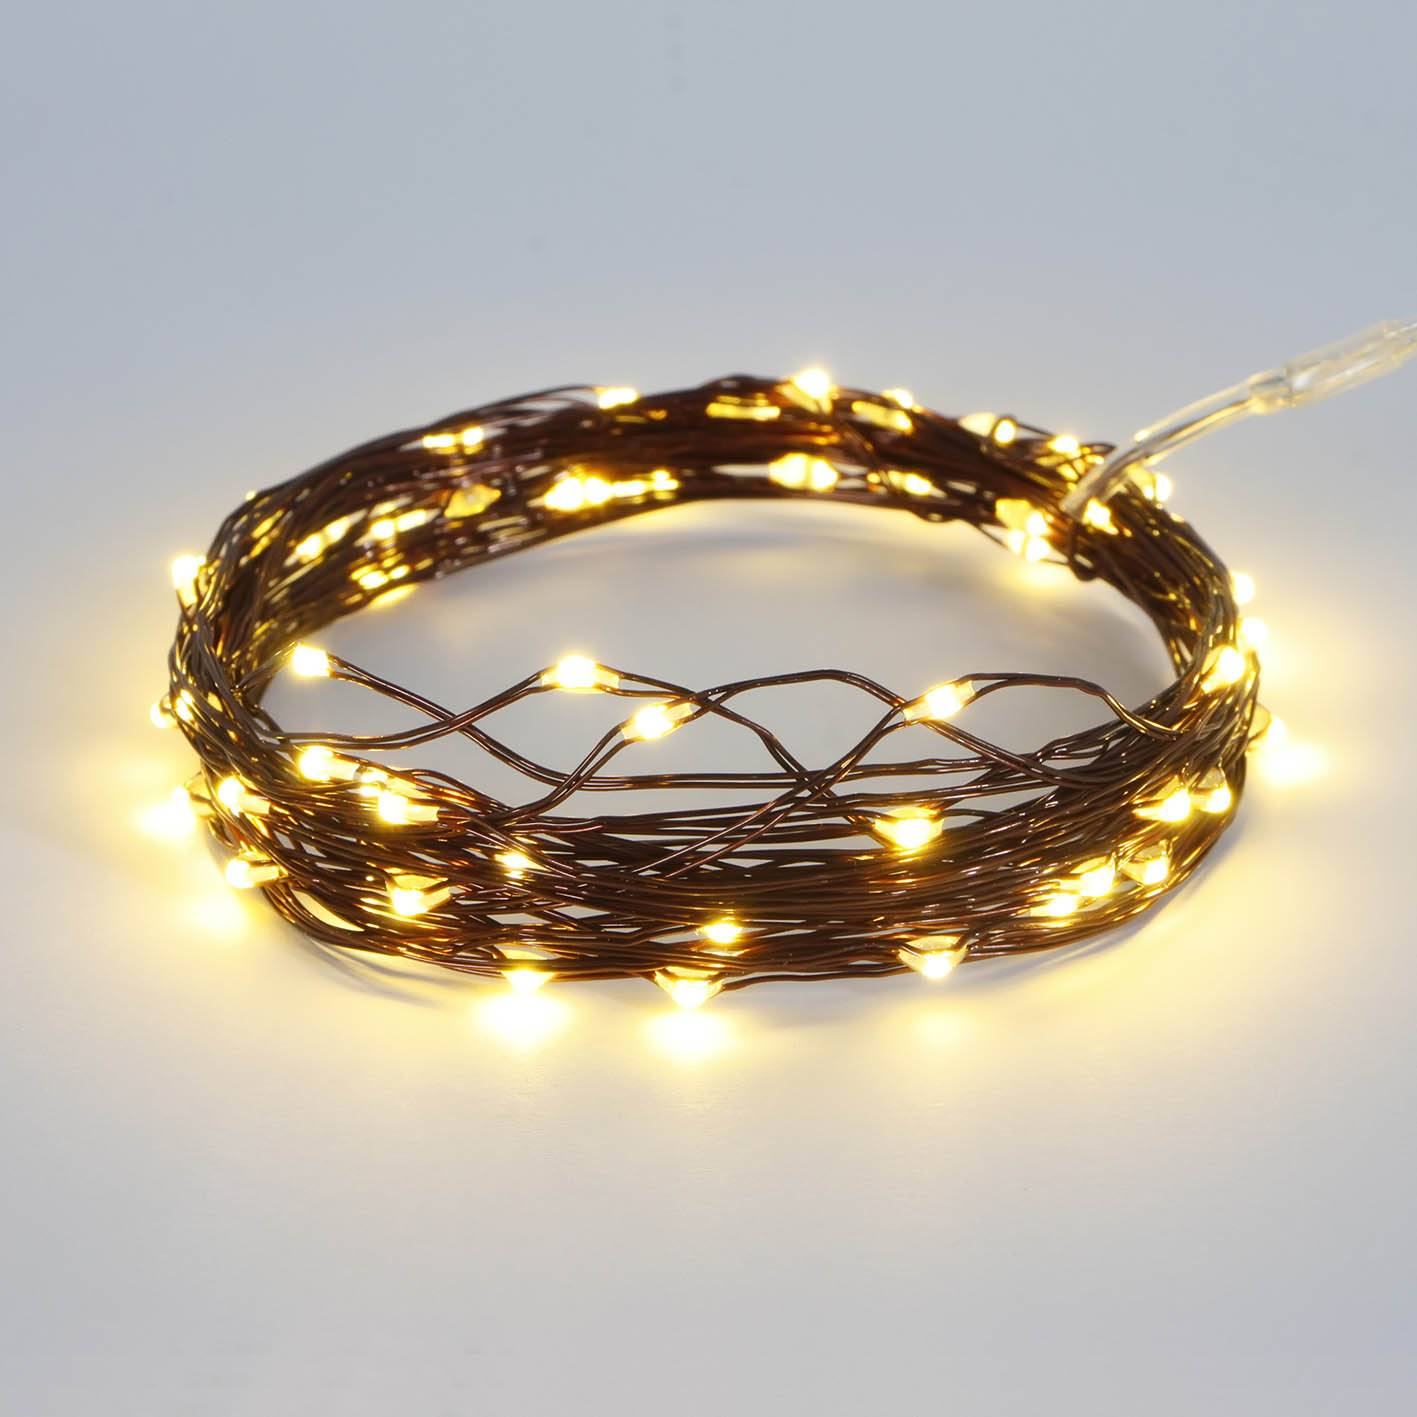 SMD LED String Light KF130081 asst.